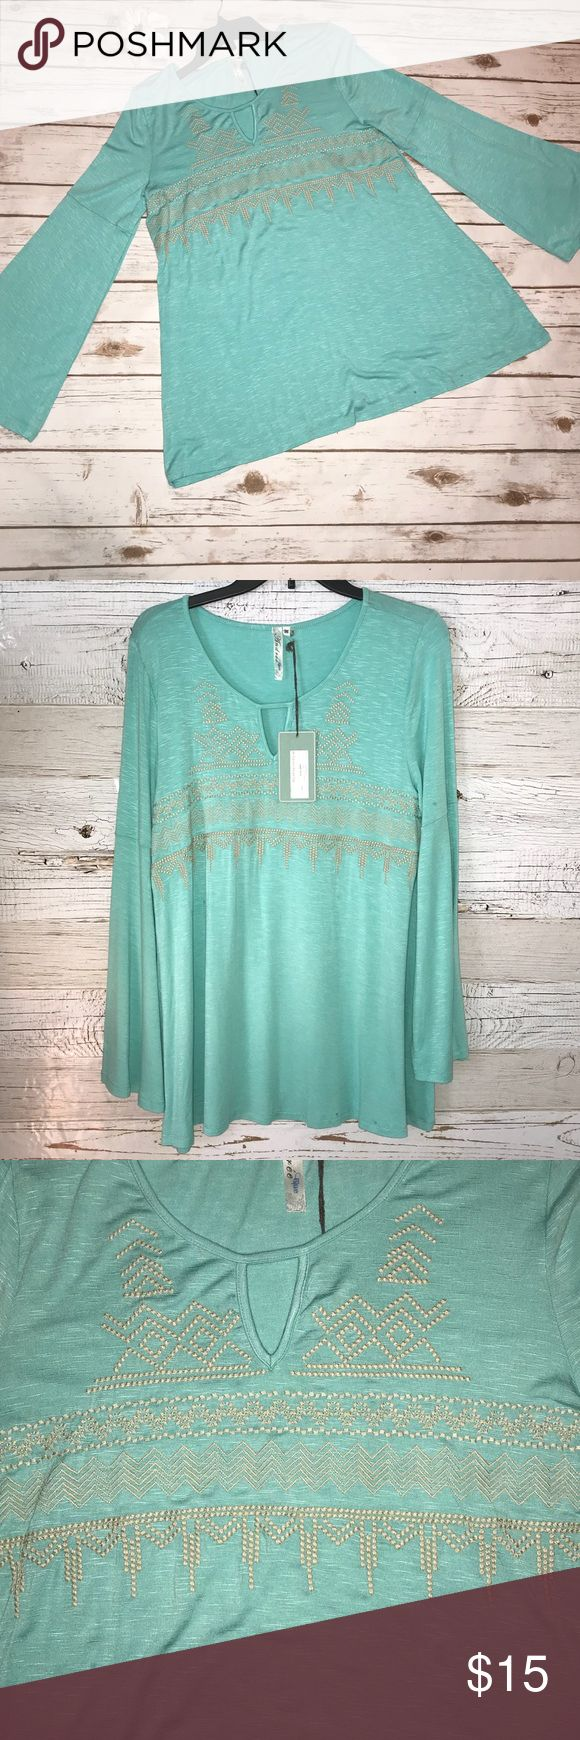 NWT Turquoise Aztec Top This Top is brand new and has never been worn. See the last pic for tags - originally $44. This Top has long sleeves that are bell sleeves. Has a keyhole neckline and cream Aztec pattern embroidery on front. andree blue Tops Blouses